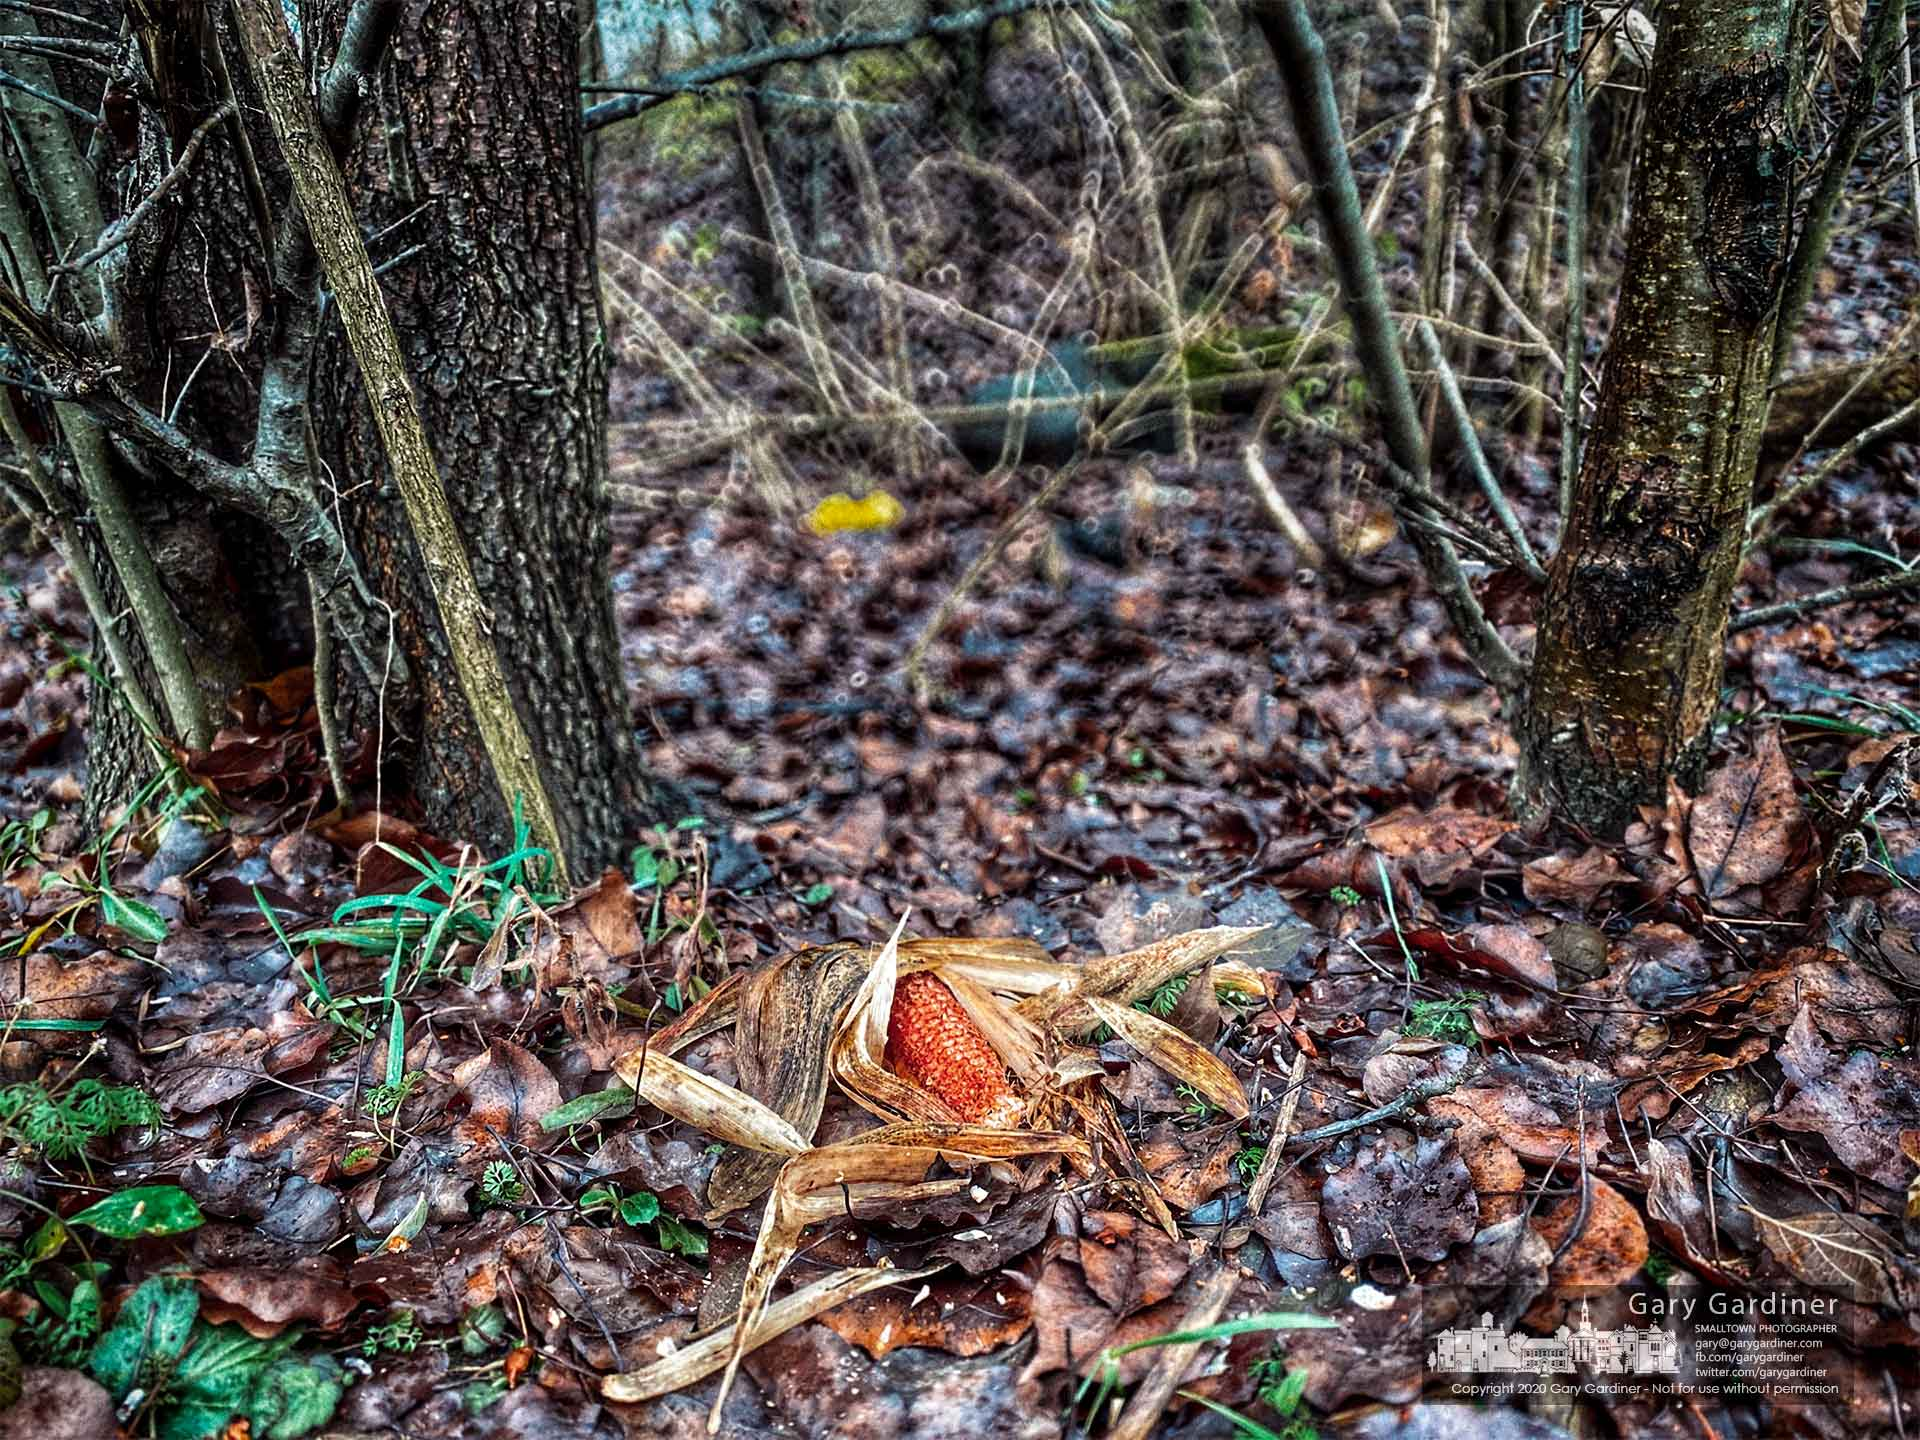 A corn cob stripped of its kernels by hungry deer sits at the edge of a small wooded section of the Braun Farm. My Final Photo for Dec. 21, 2020.